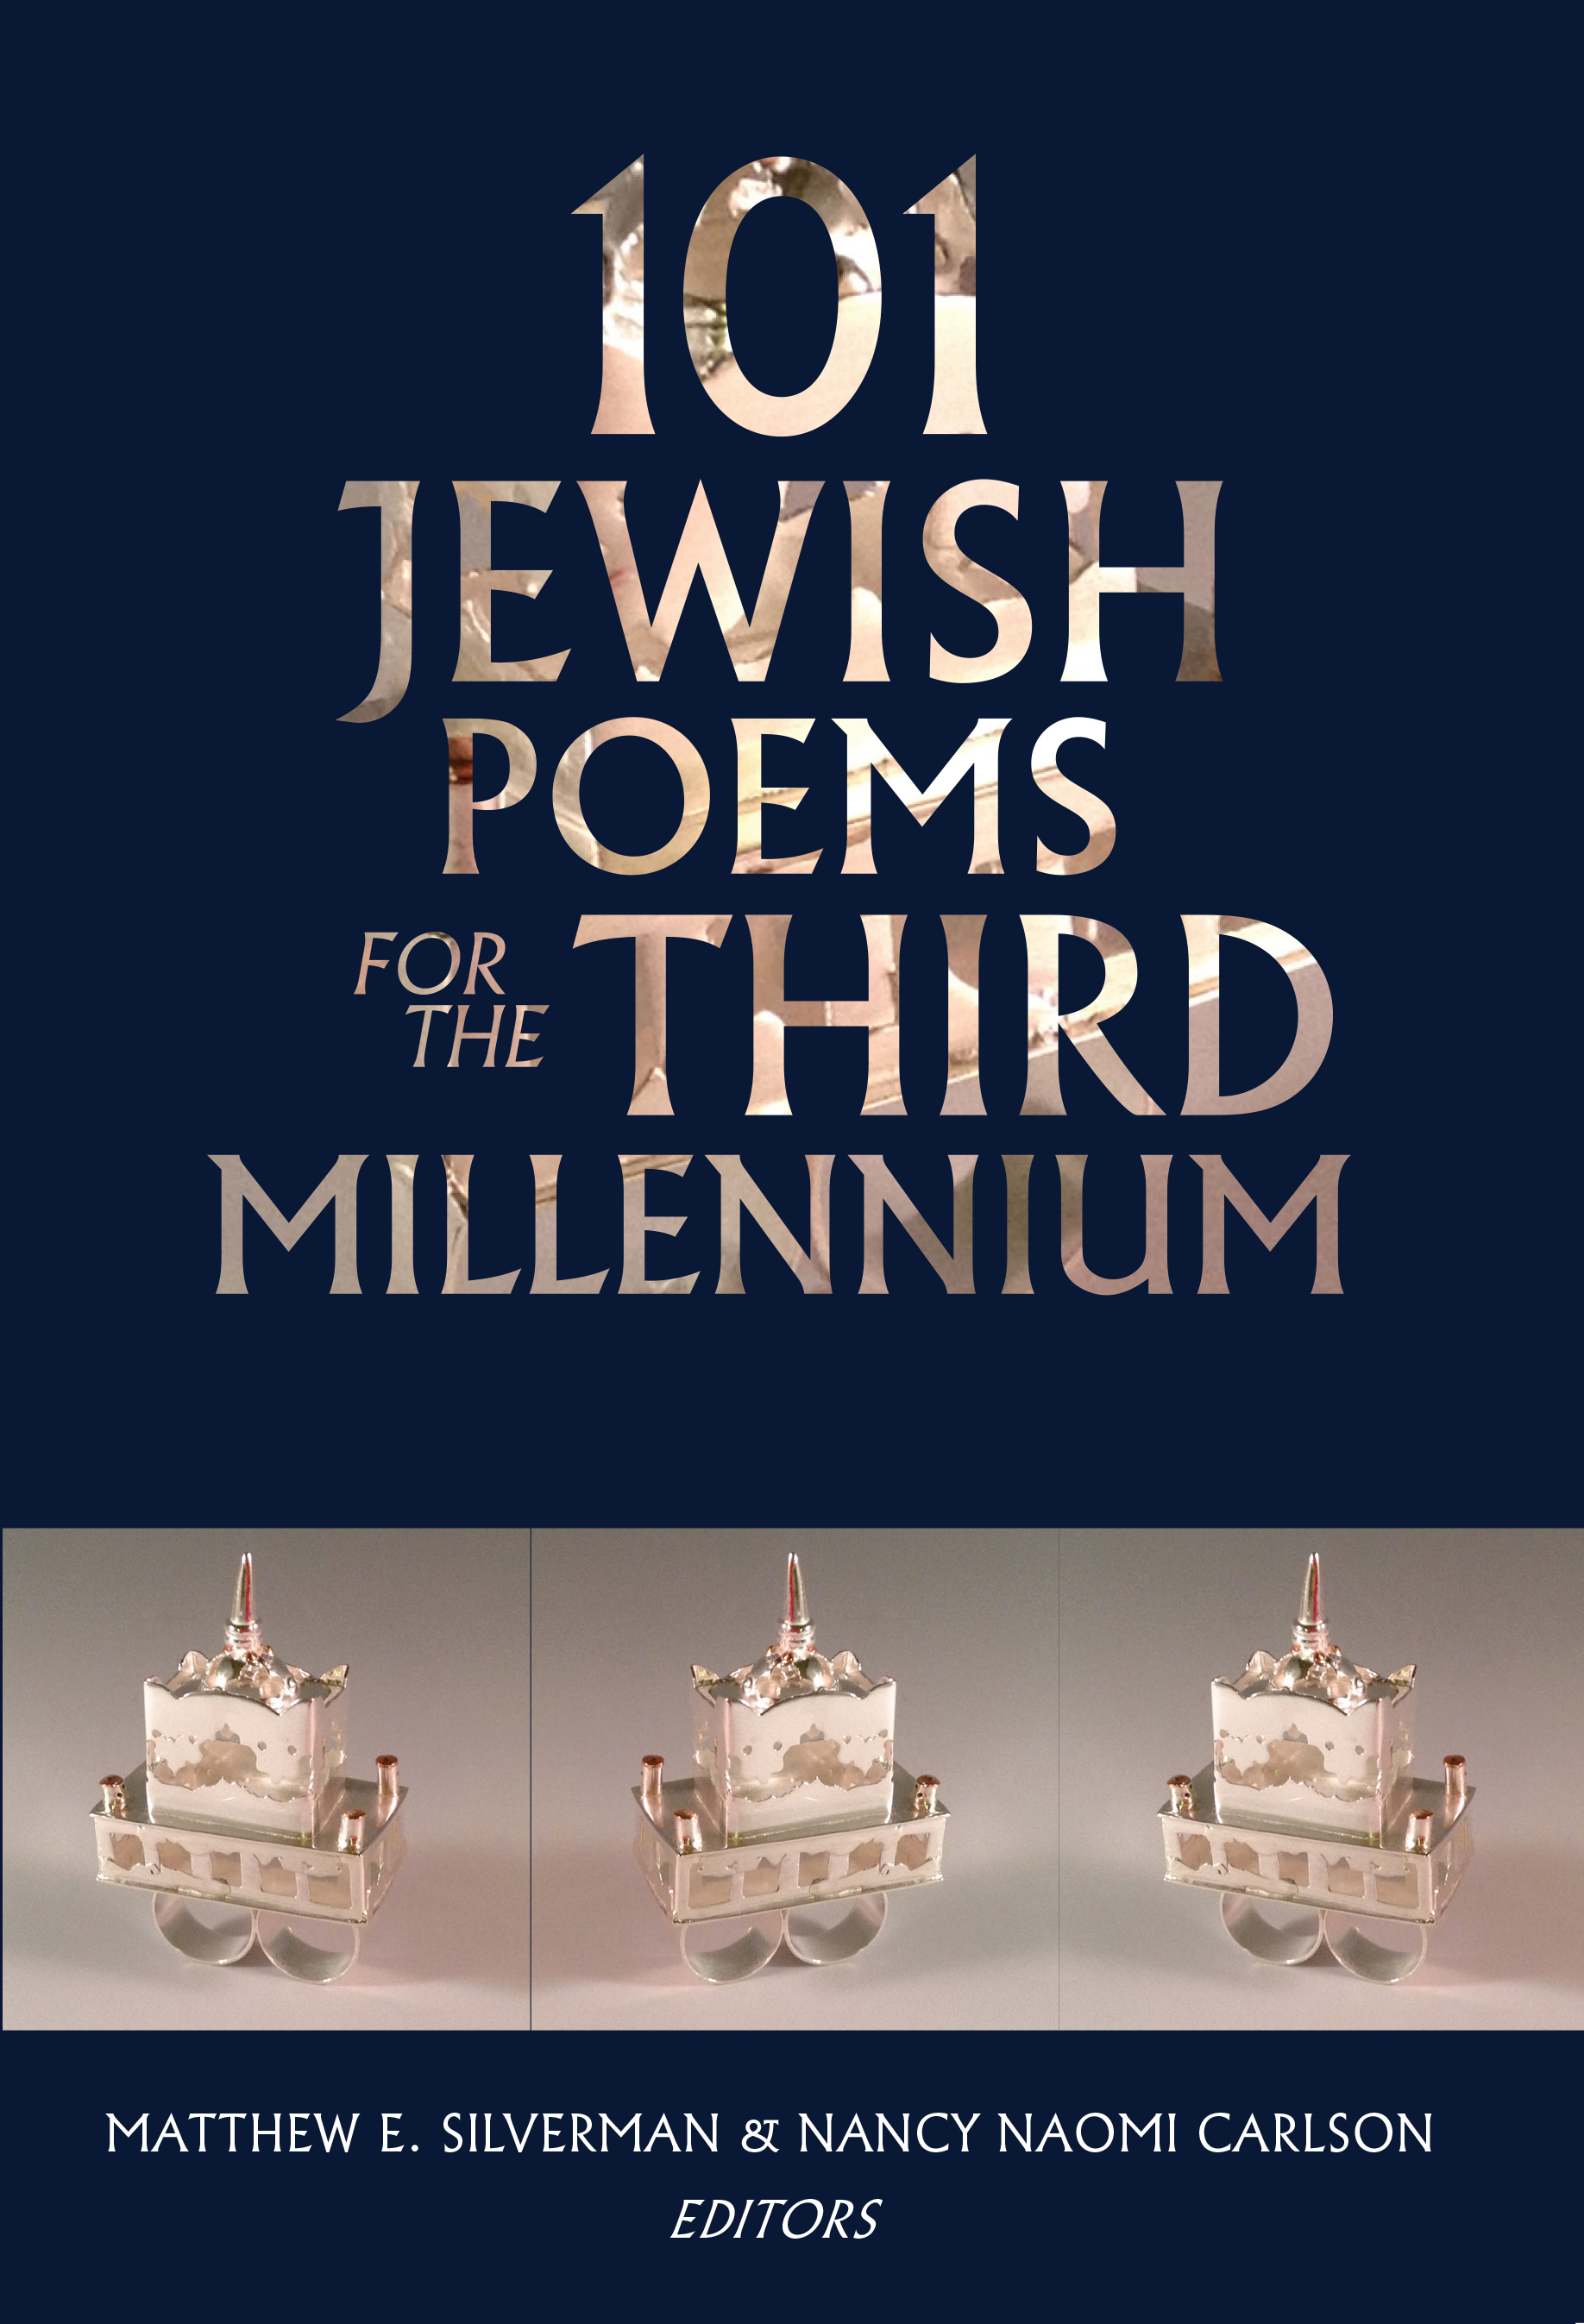 101 Jewish Poems for the Third Millennium